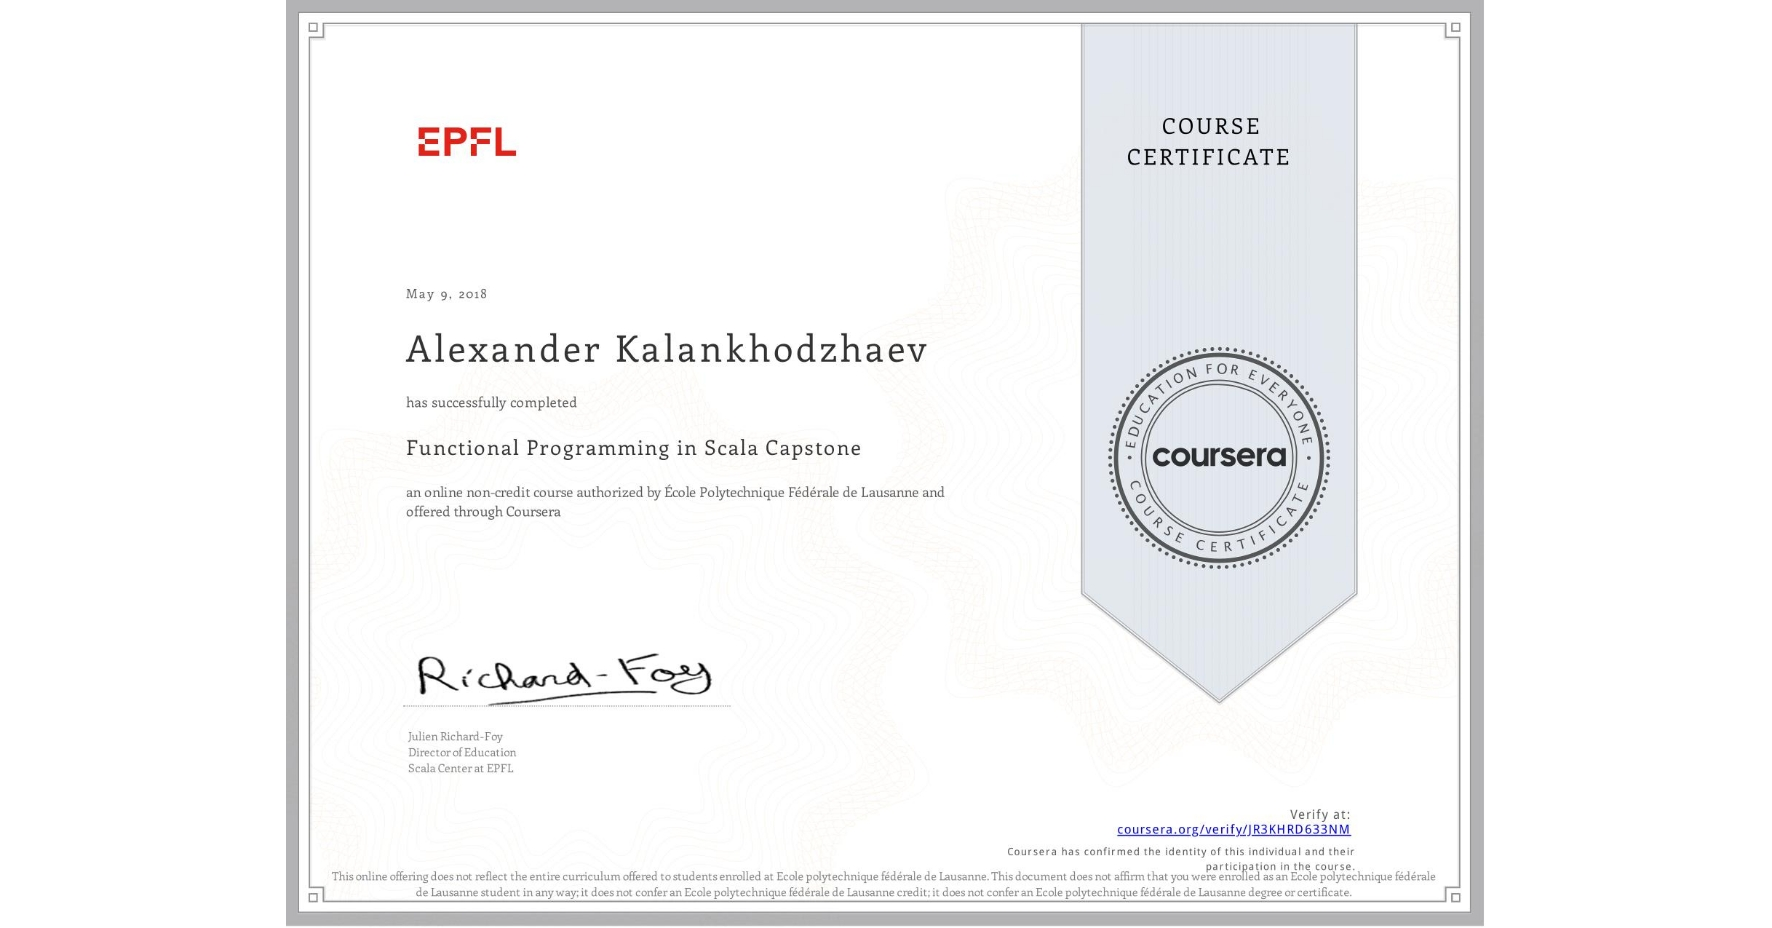 View certificate for Alexander Kalankhodzhaev, Functional Programming in Scala Capstone, an online non-credit course authorized by École Polytechnique Fédérale de Lausanne and offered through Coursera